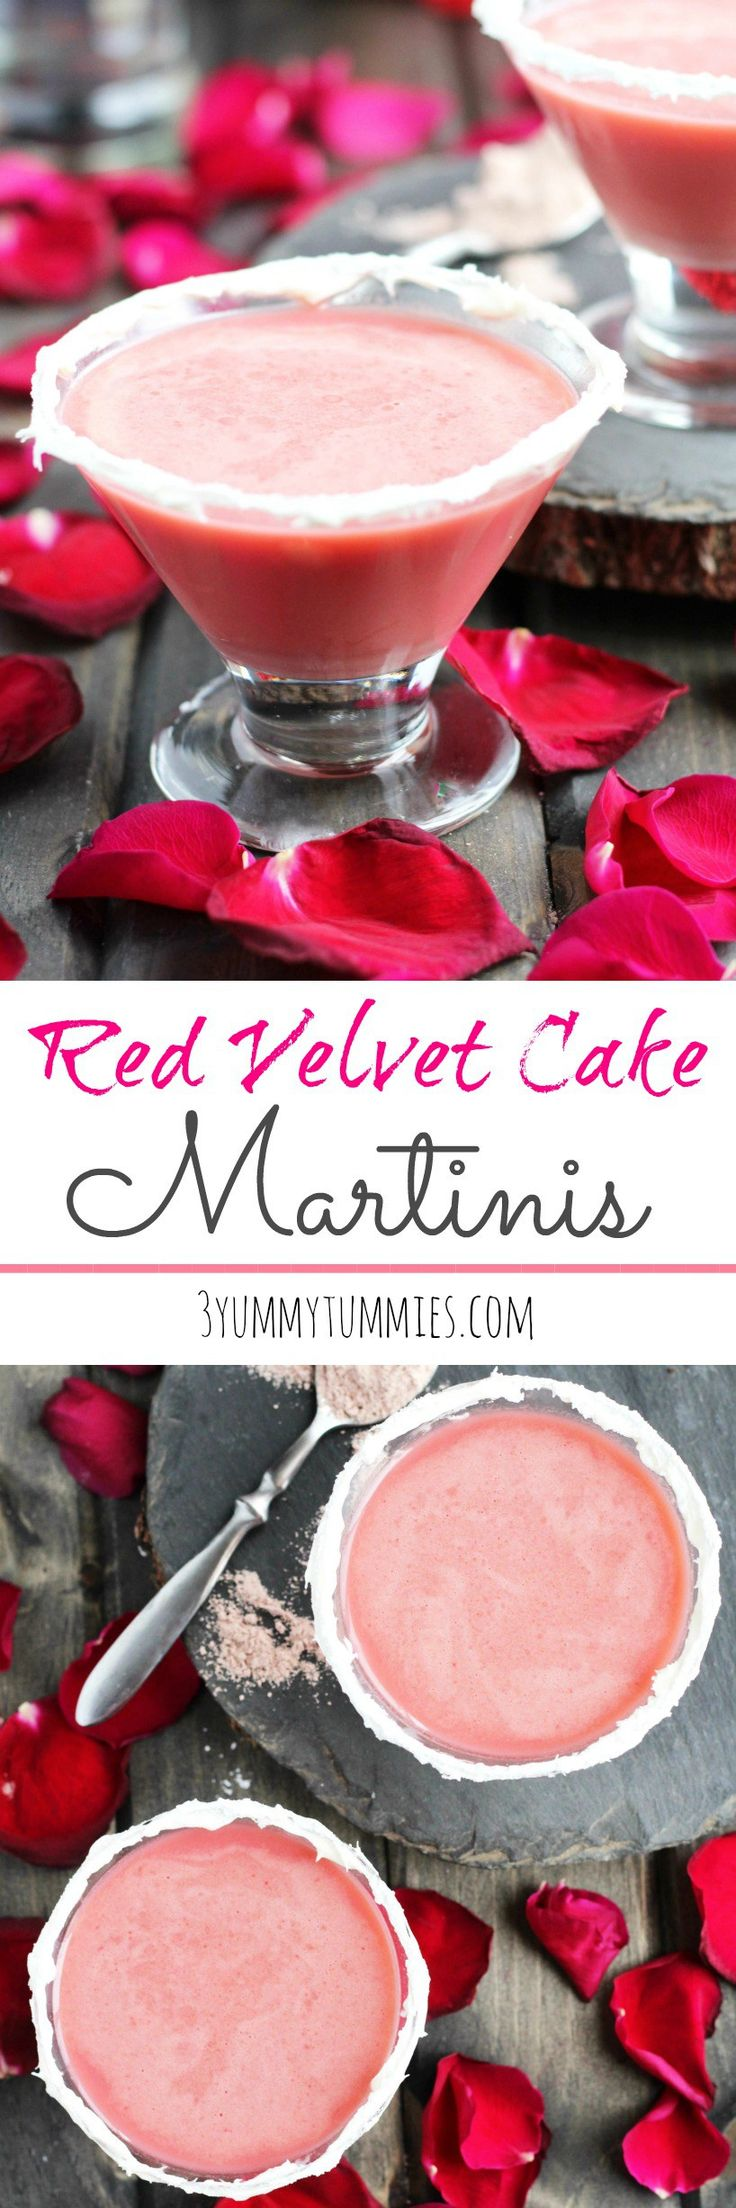 The perfect Valentine's Day cocktail with Red Velvet Cake mix! #redvelvetmartini #martini #redvelvetcocktail #valentinesdaycocktail #cocktail